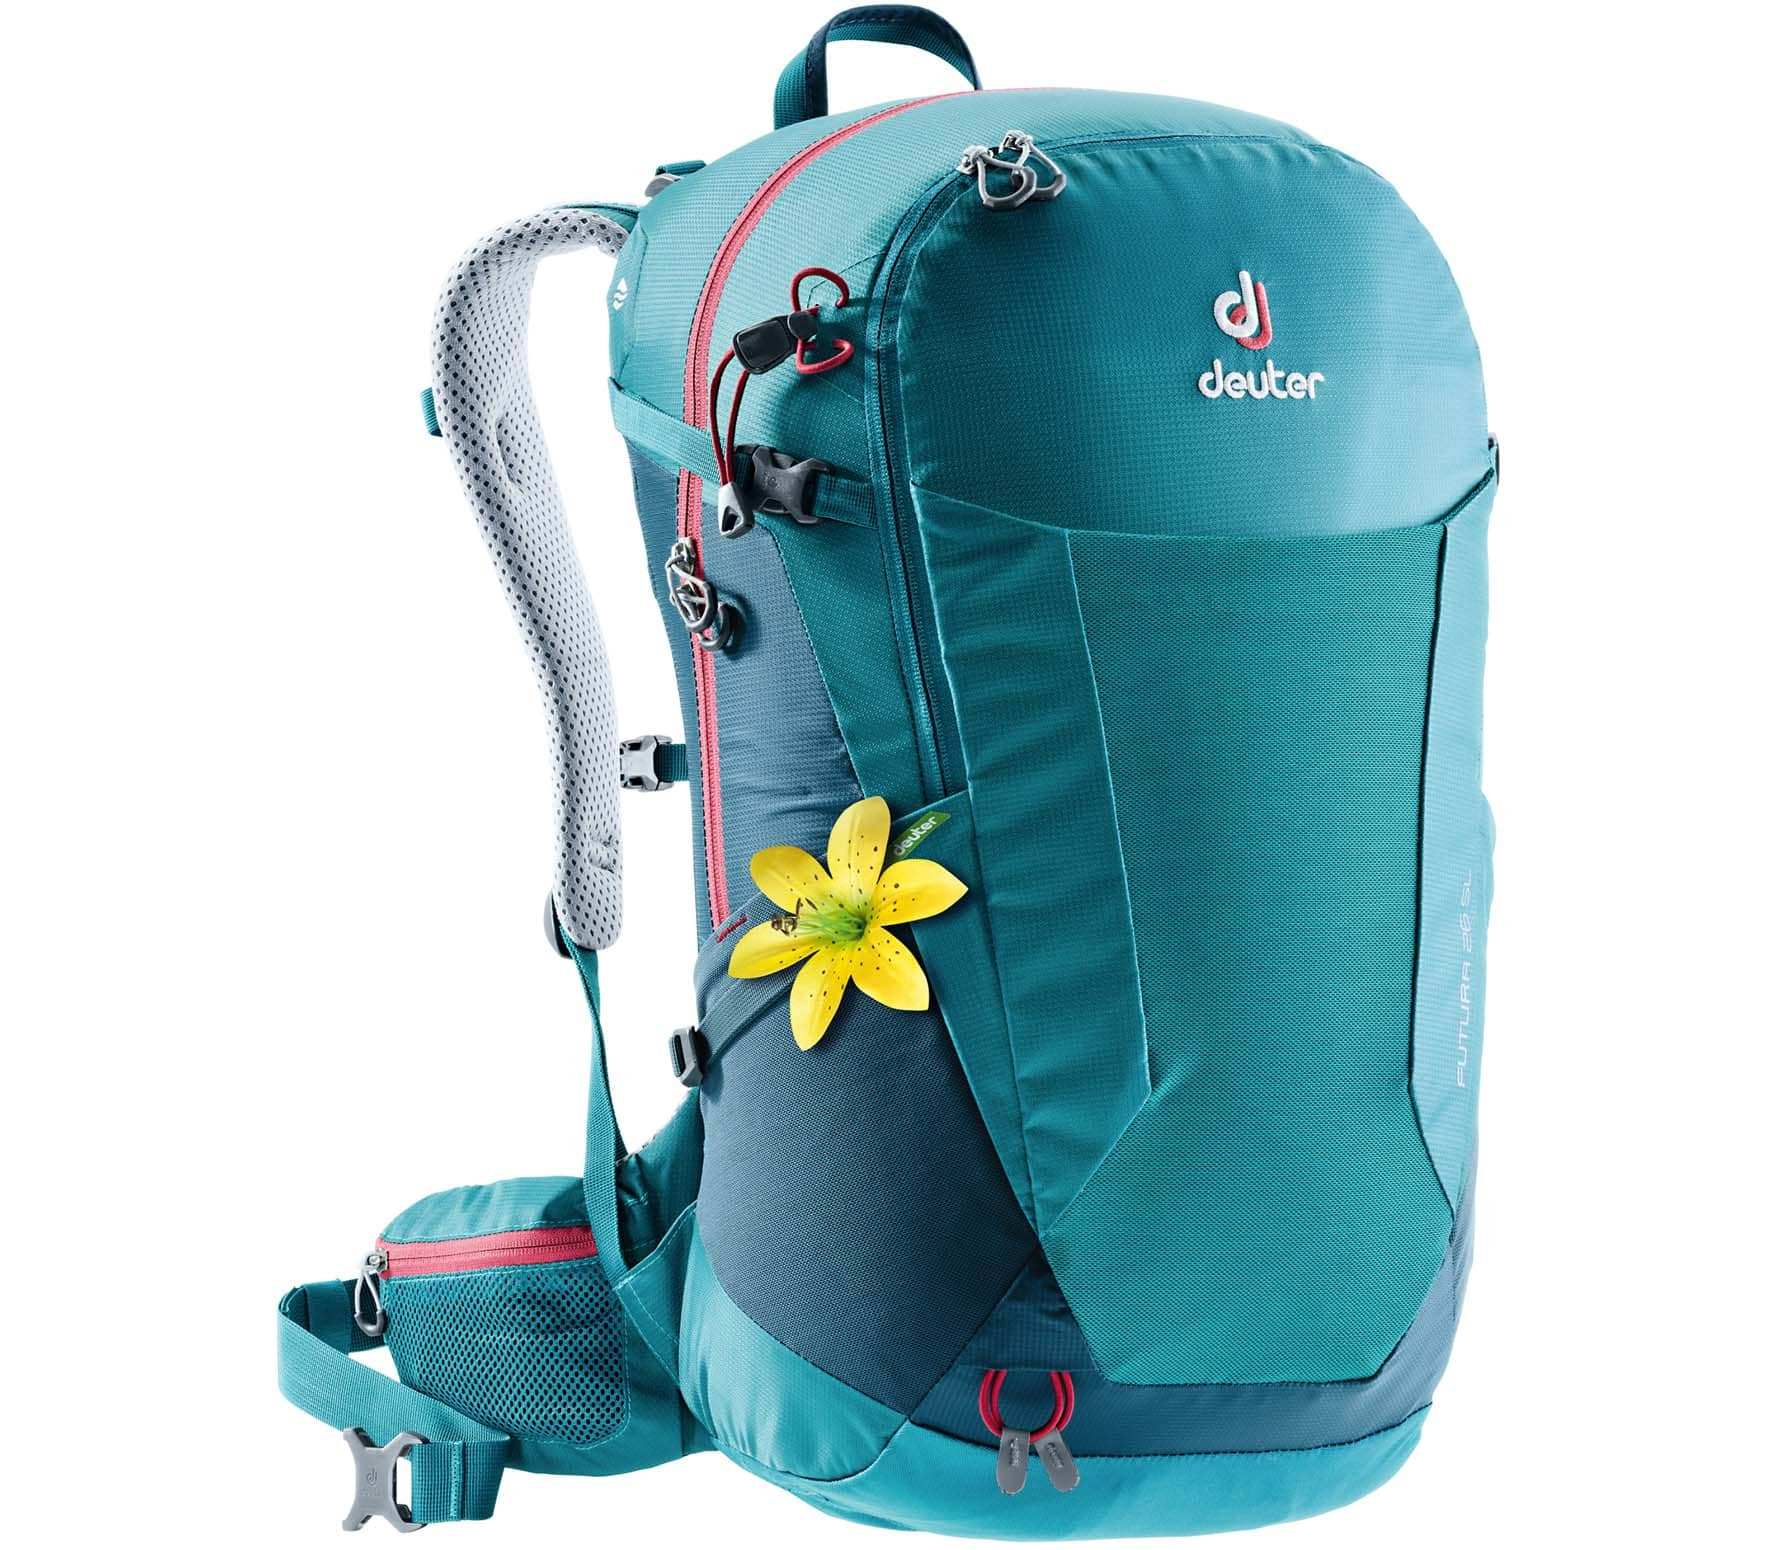 Deuter - Futura 26 SL women's hiking backpack (blue)